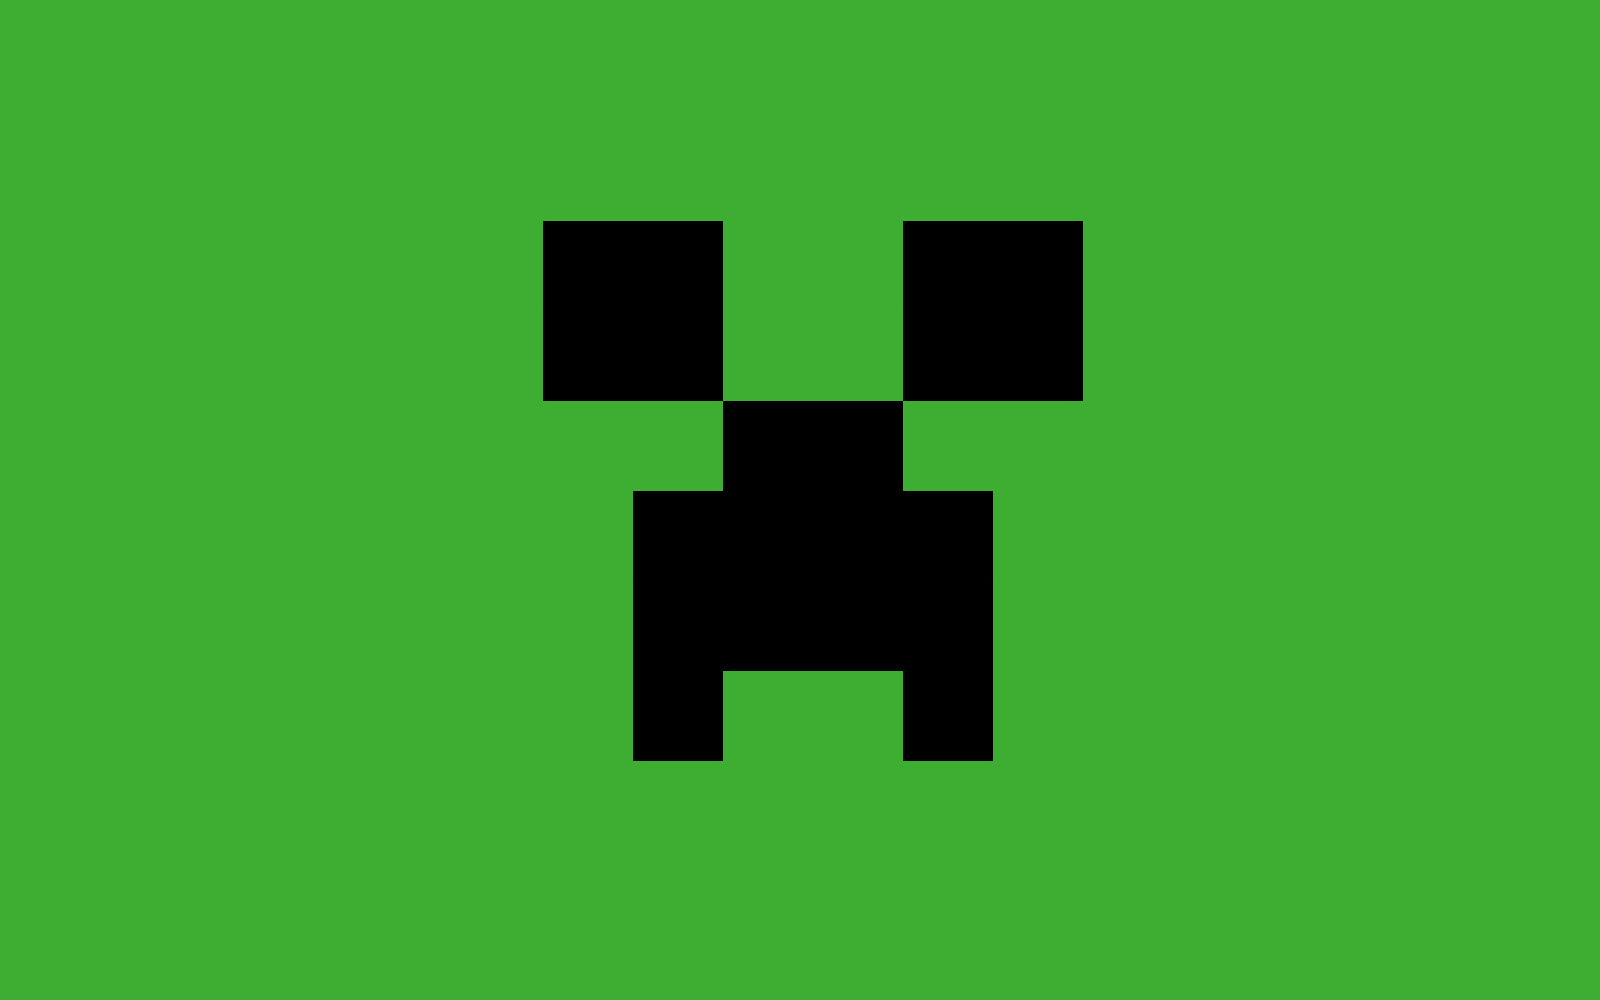 1000+ images about Minecraft obsessed kids on Pinterest.